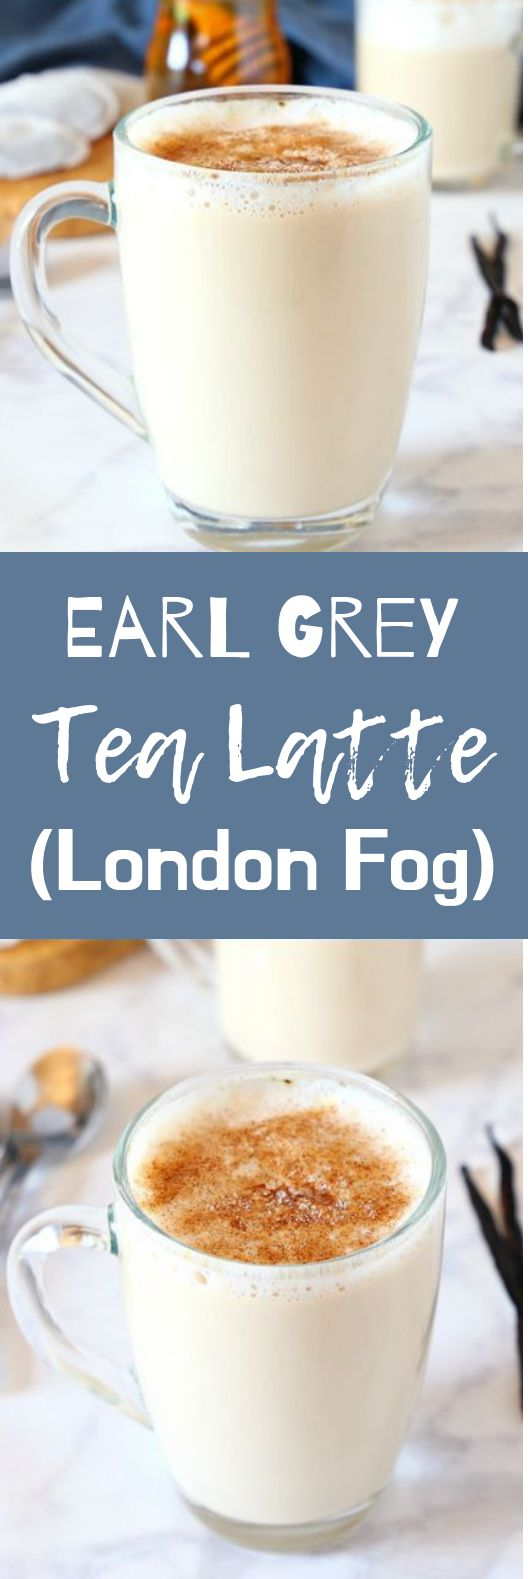 Earl Grey Vanilla Tea Latte (London Fog) #winter #drinks